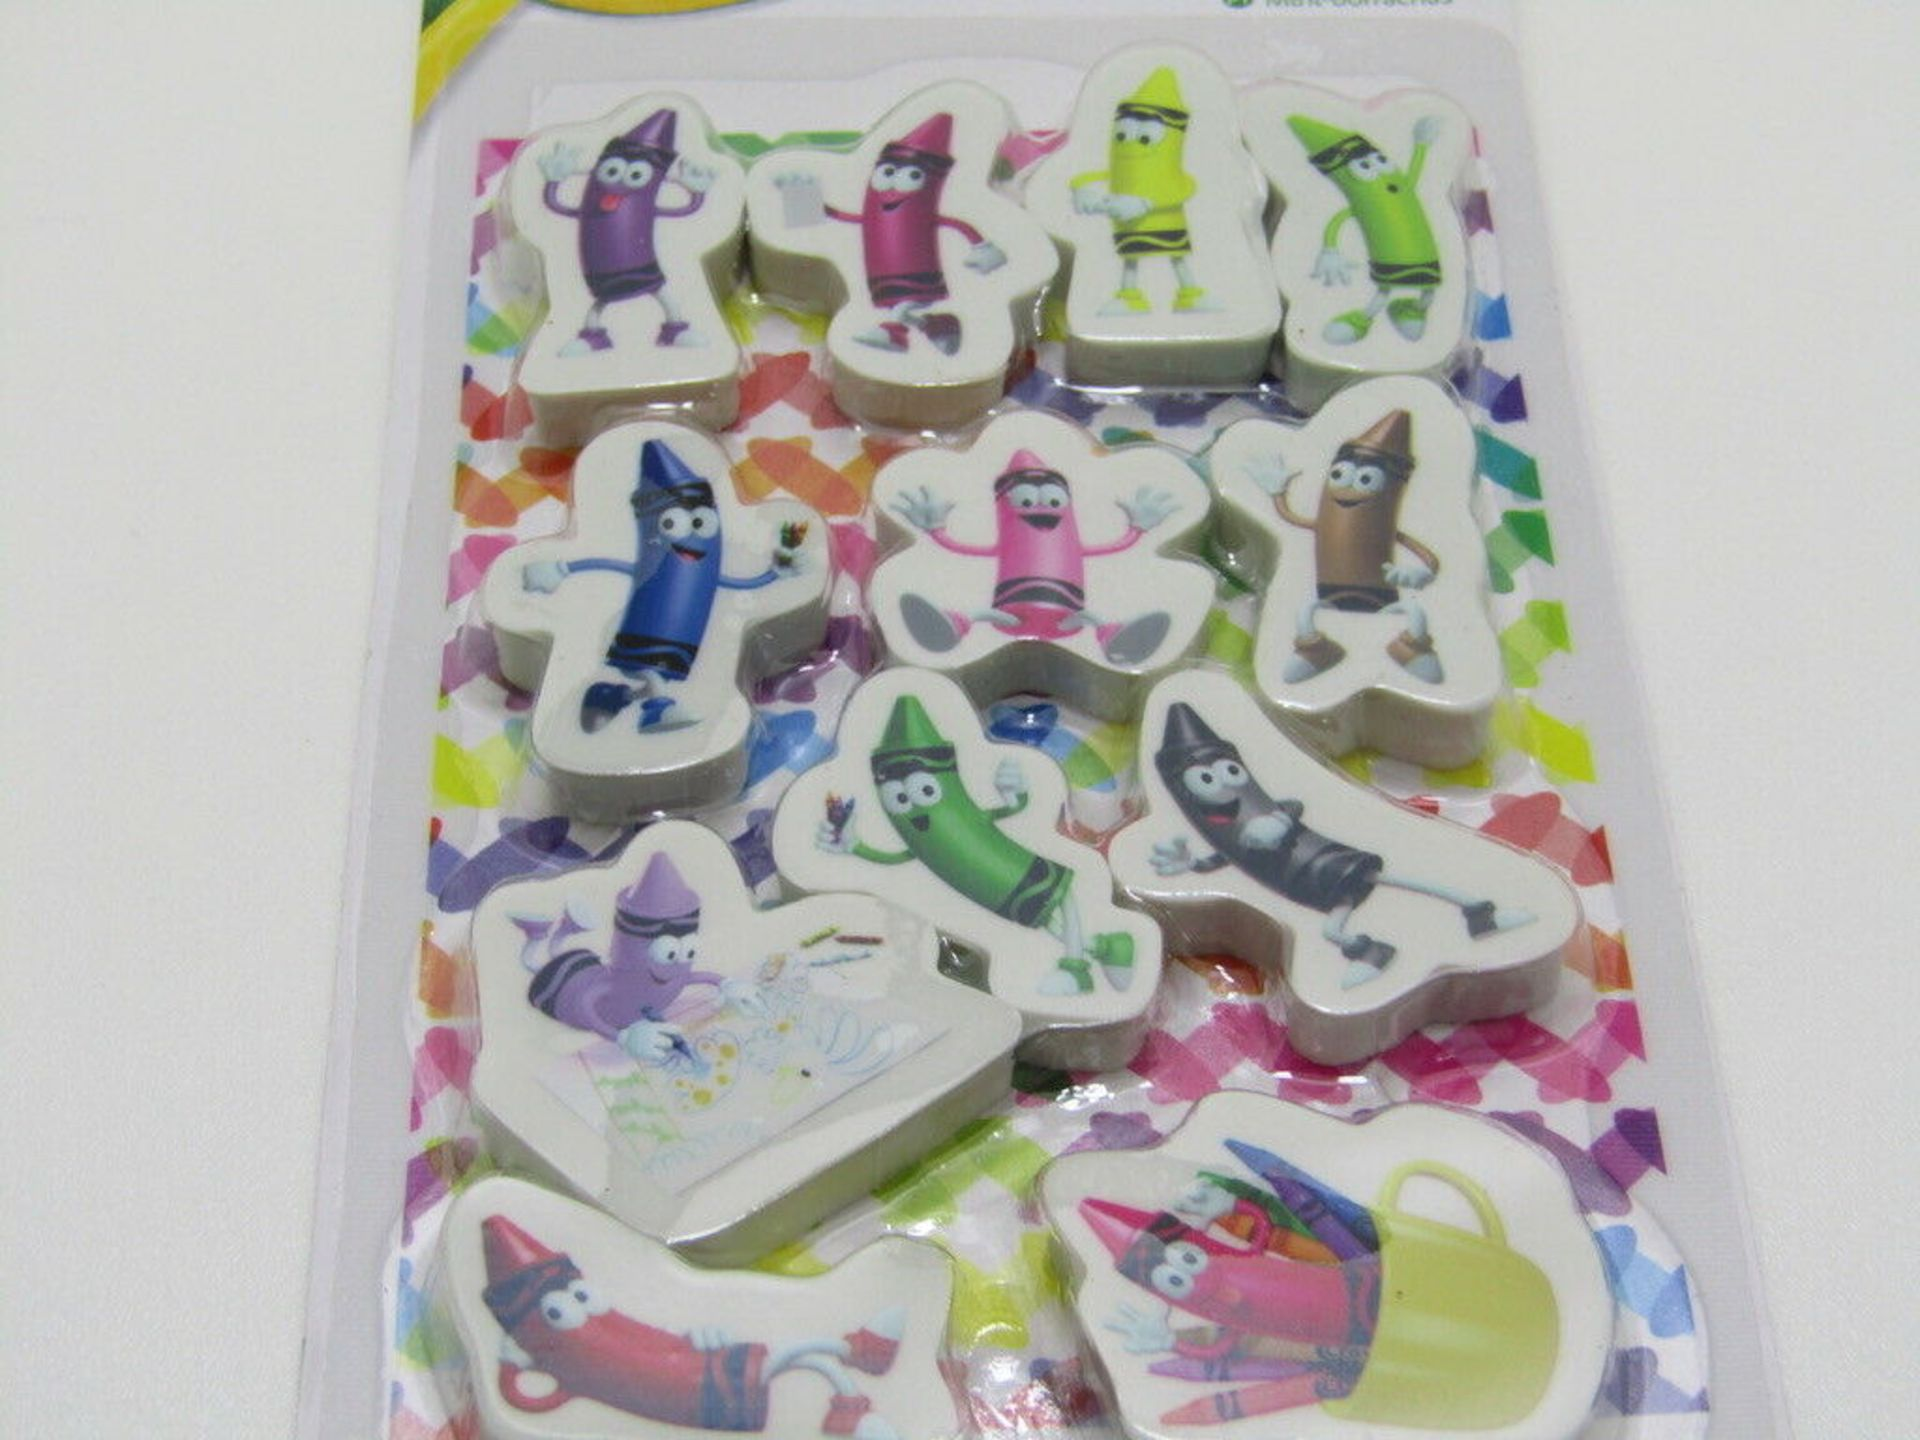 Lot 71 - 20 x CRAYOLA pack of 12 Mini Erasers.no vat on hammer.You will get 20 packs of 12 erasers.Crayola